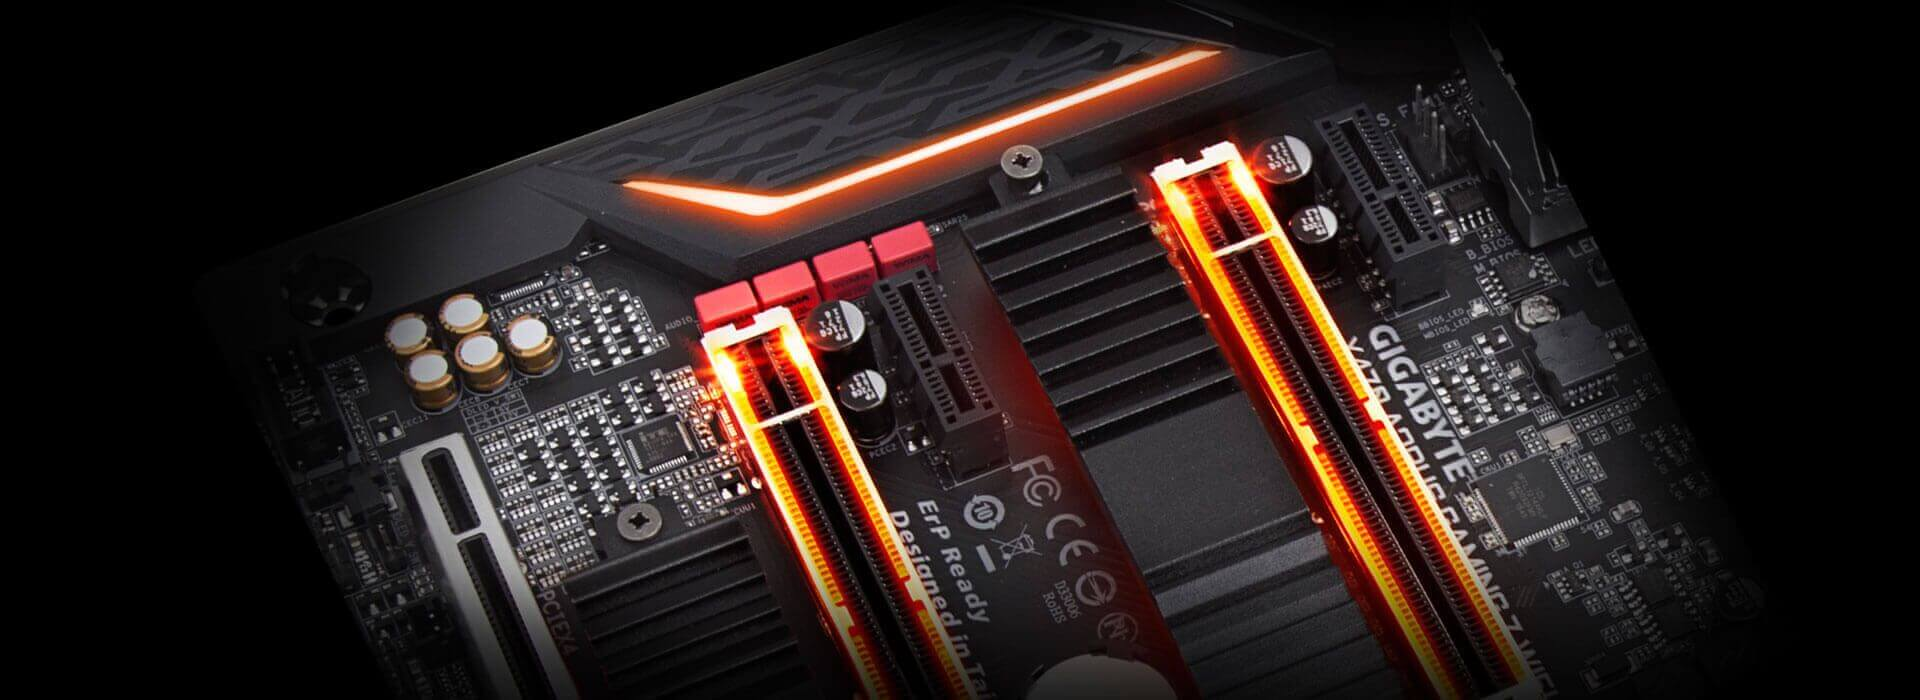 X470 Aorus Gaming 7 Wifi Rev 10 Motherboard Gigabyte Global Power Connectors Of The Front Panel Connector For Your Reference Swappable Overlay Accent Led